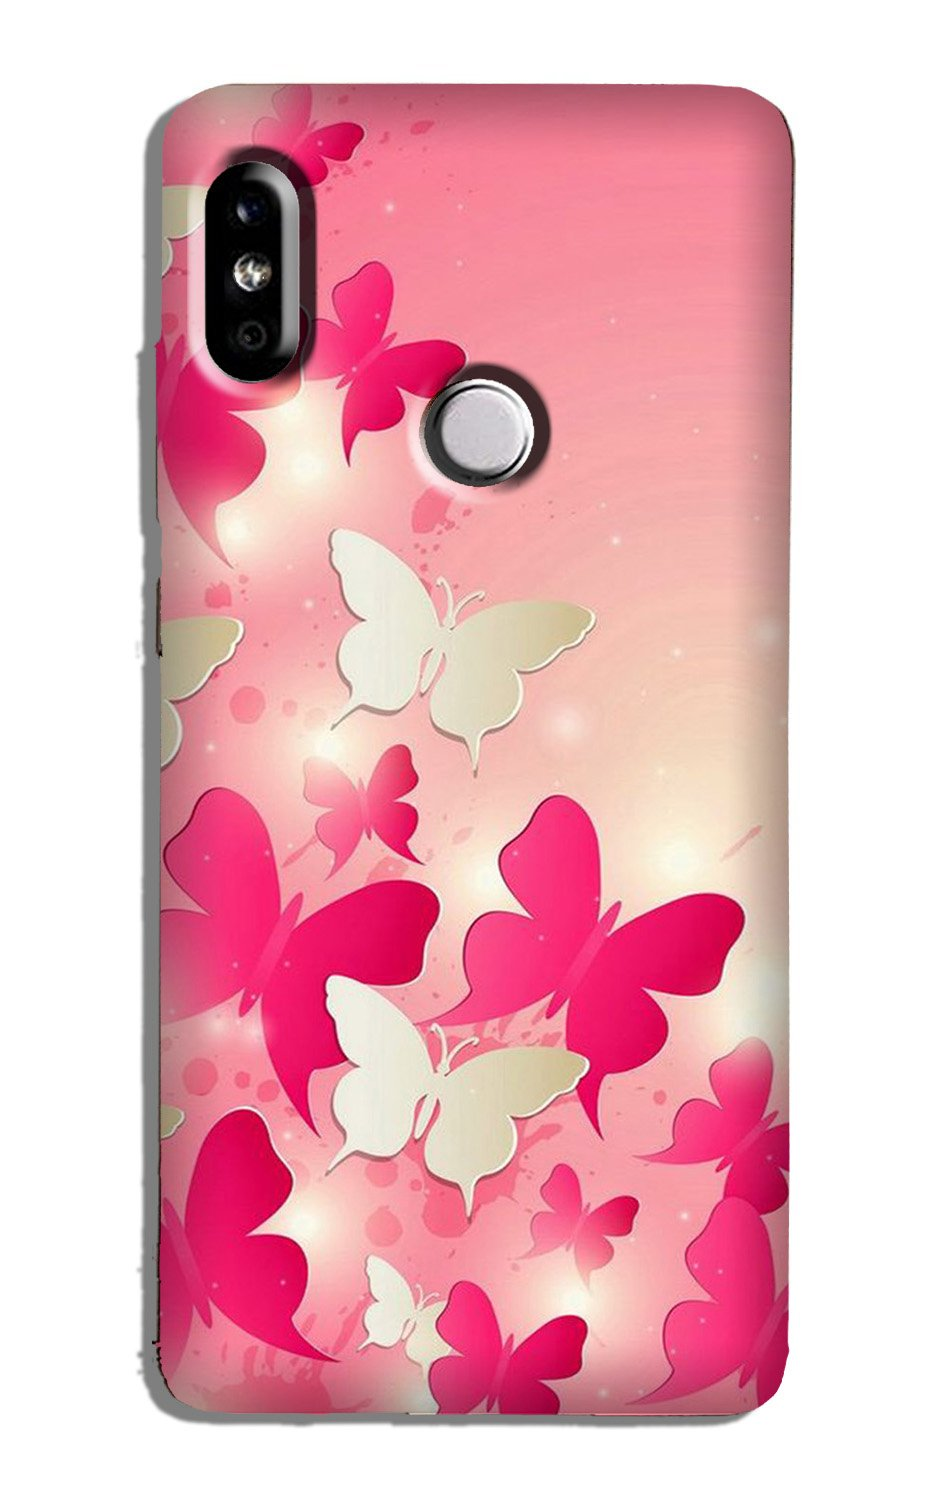 White Pick Butterflies Case for Xiaomi Redmi Y3